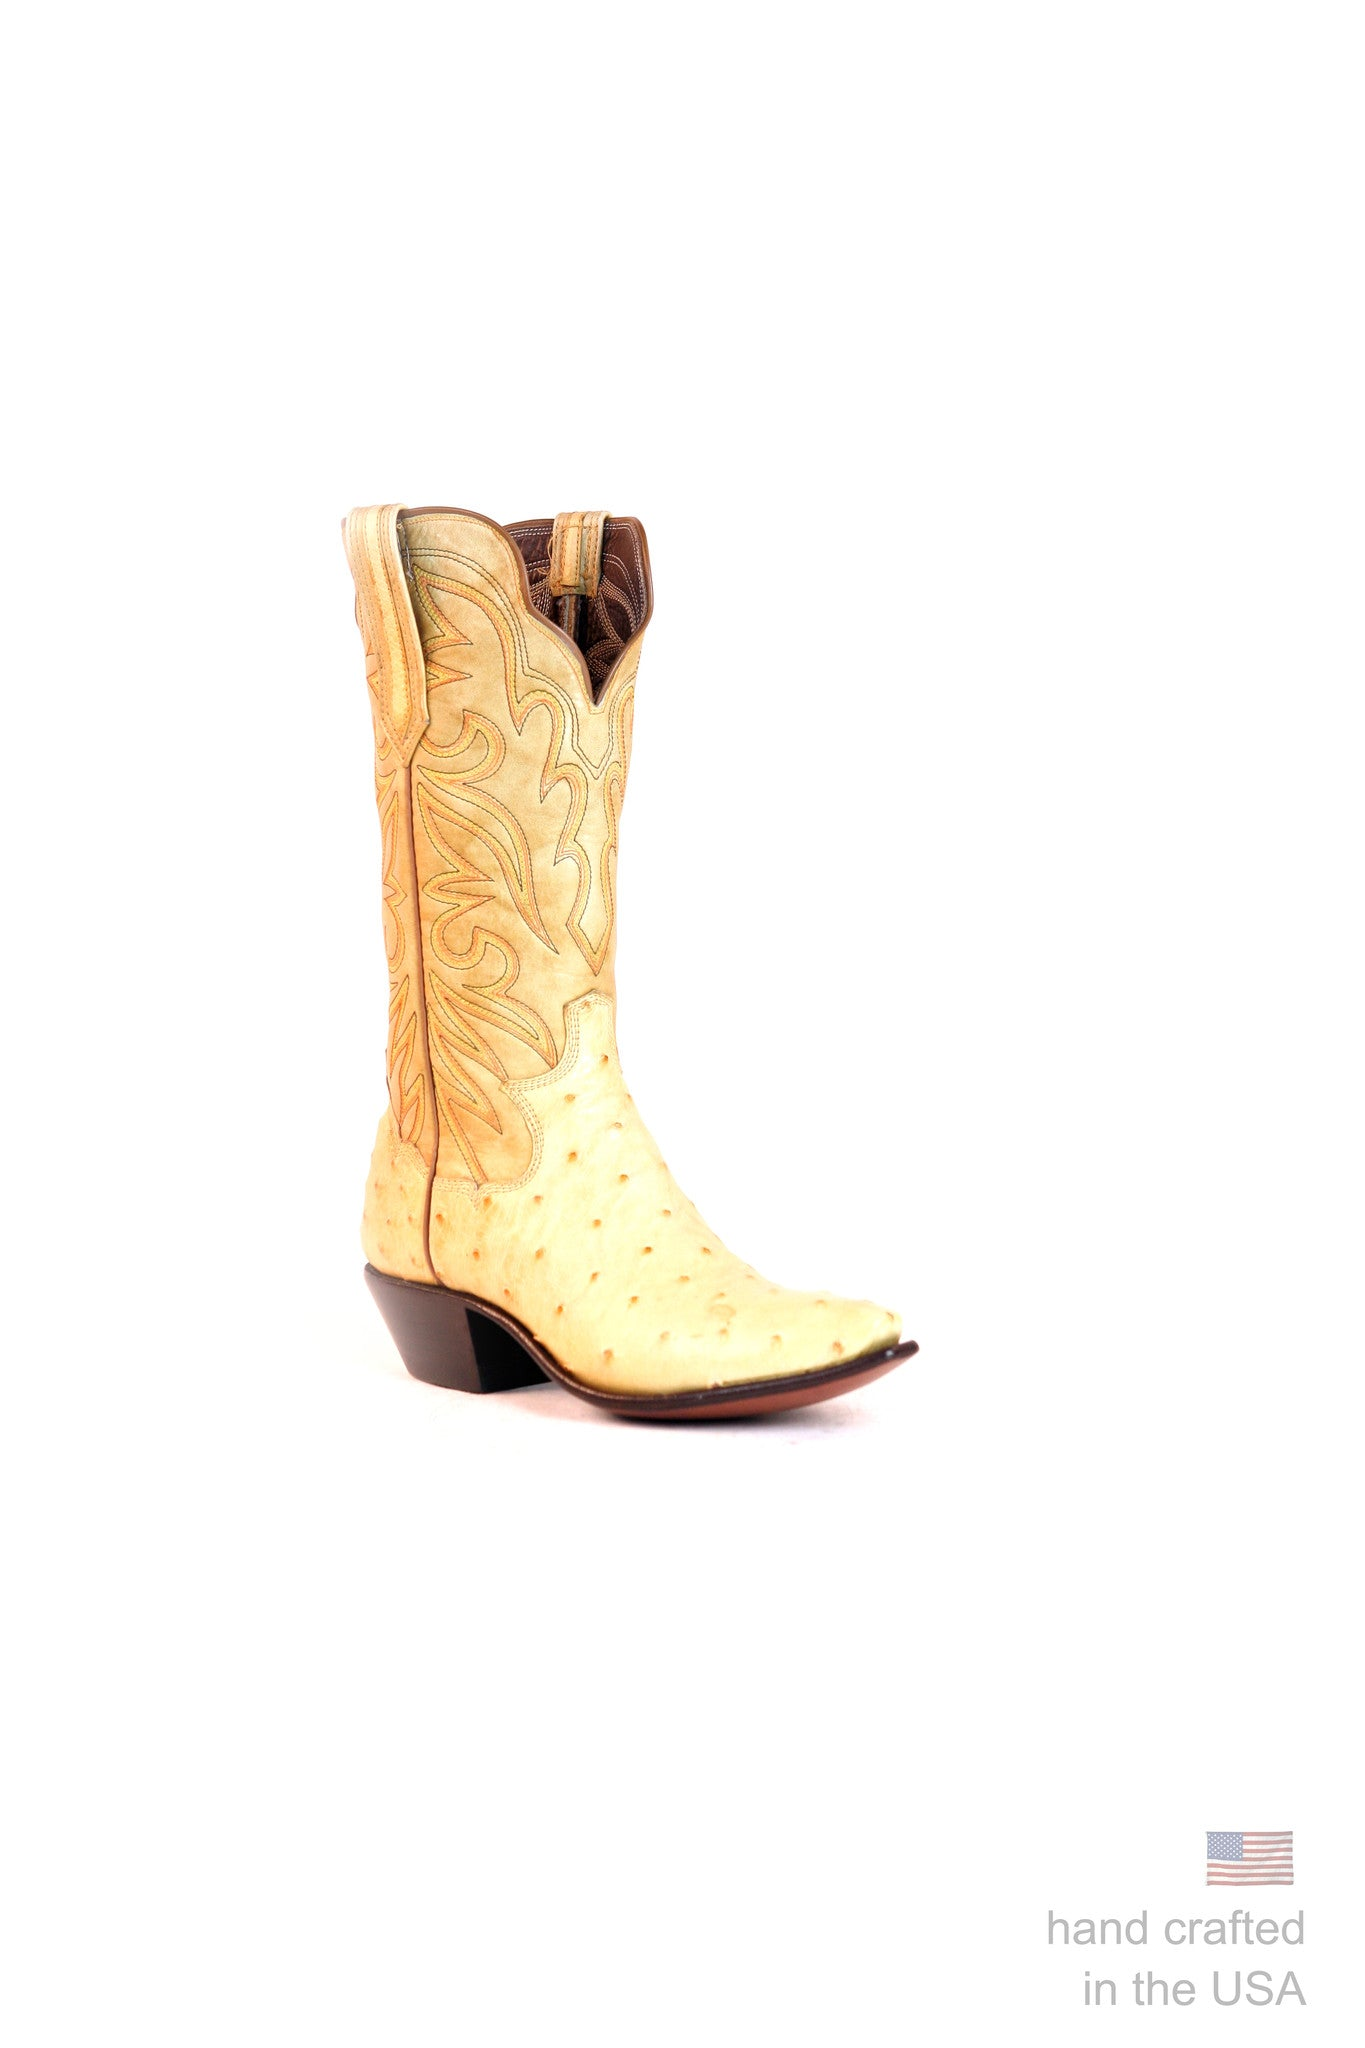 Singles: Boot 0055: Size 5B